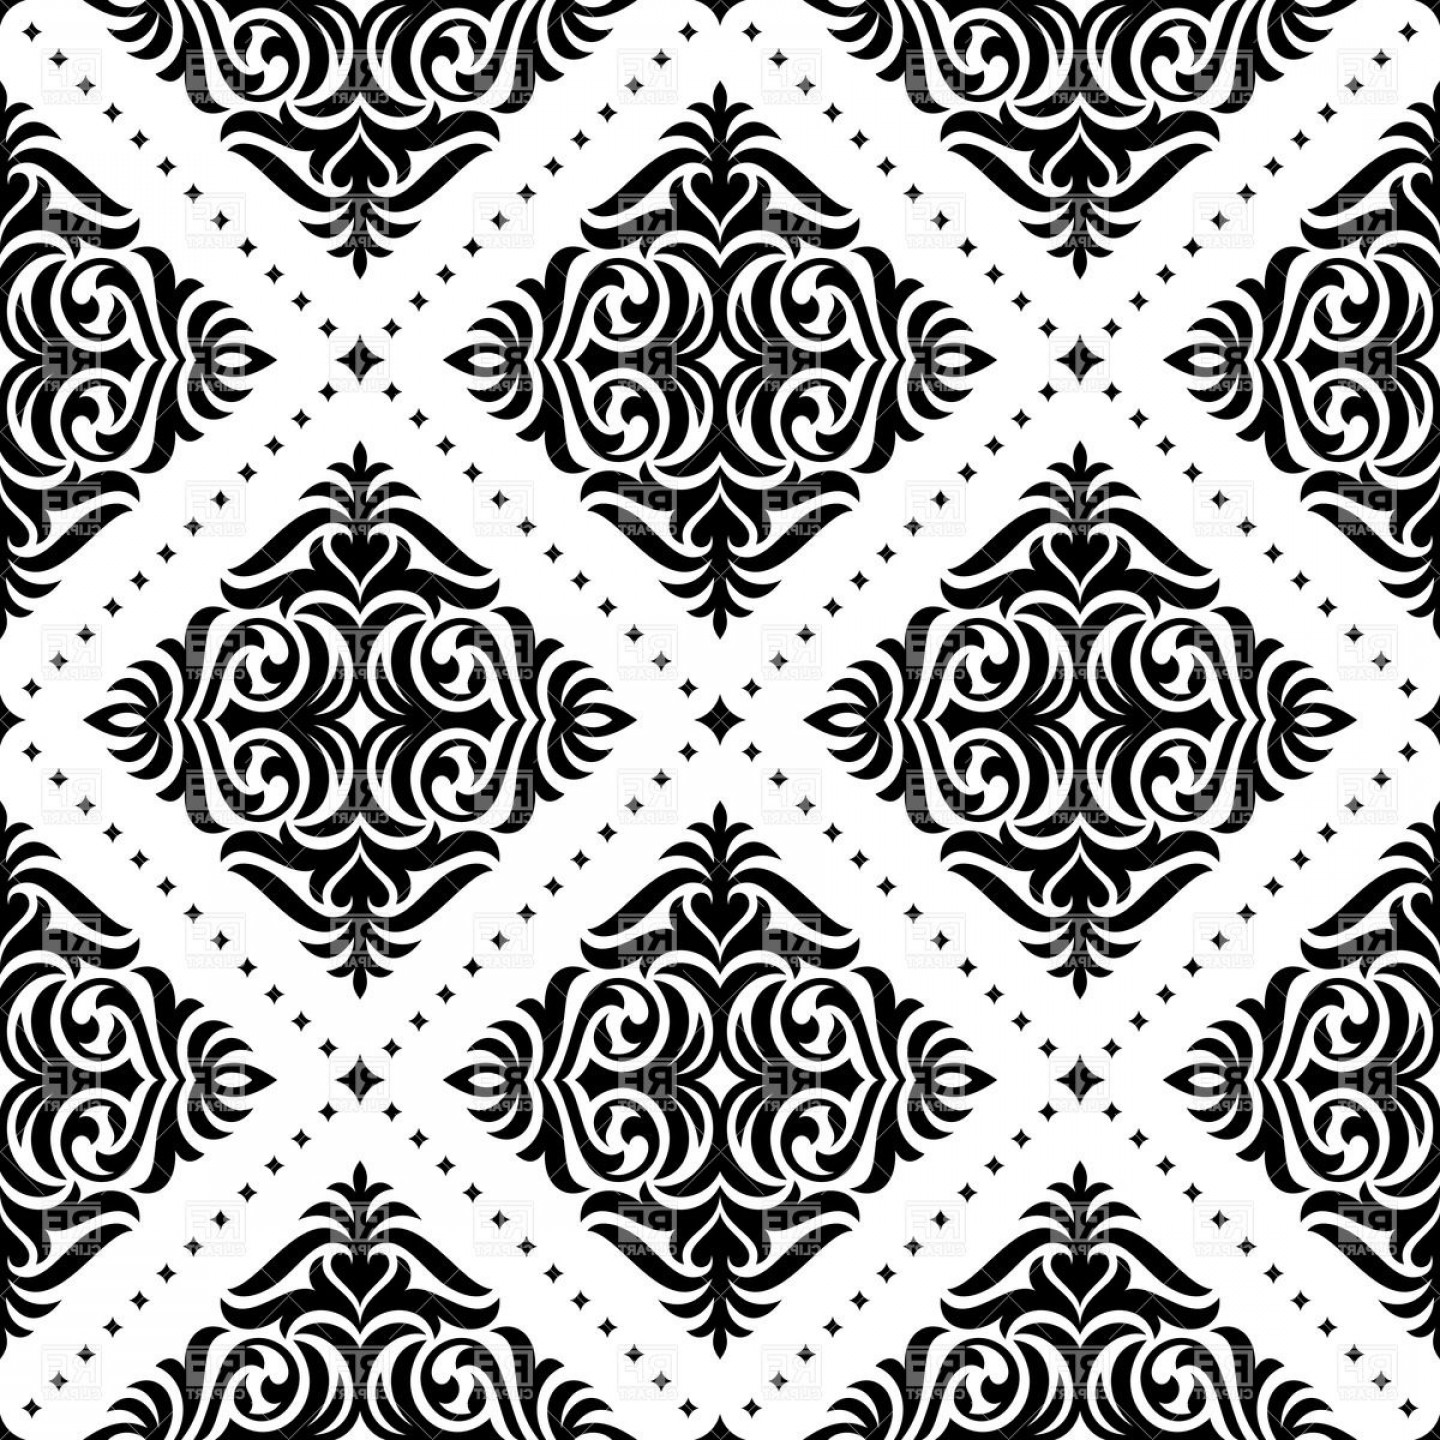 Damask Background Vector Art: Black And White Damask Pattern Vector Clipart